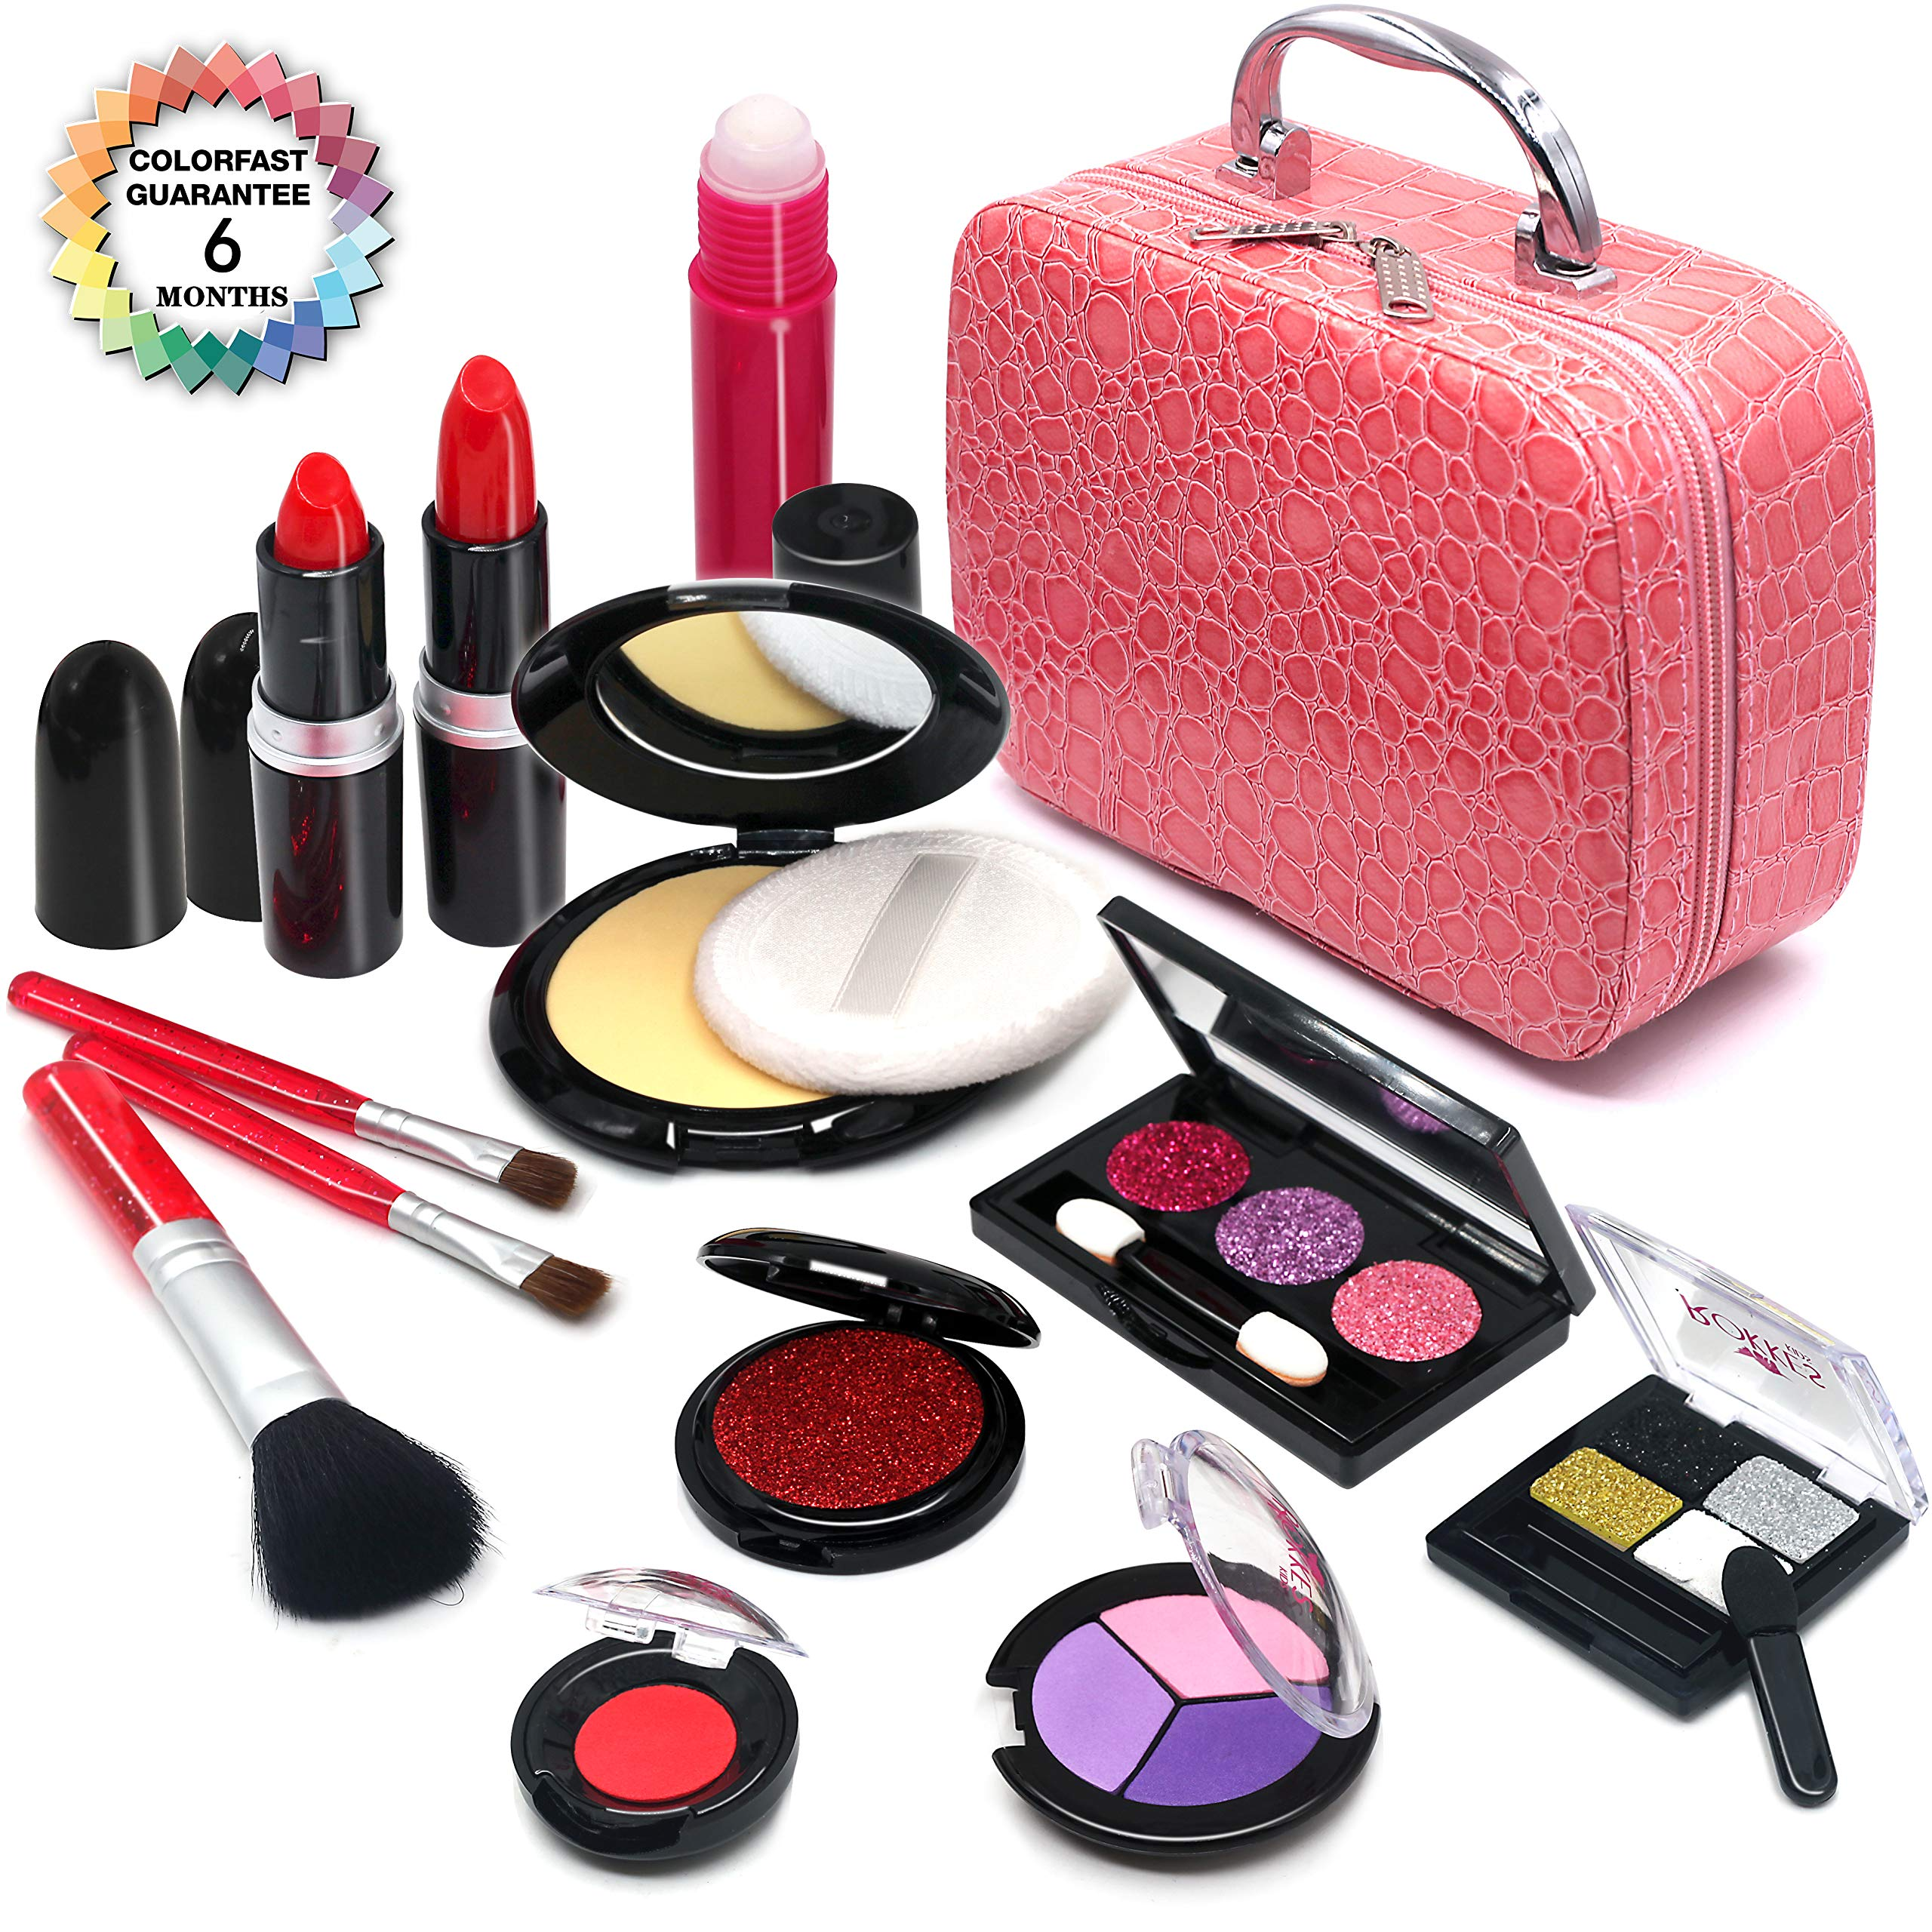 Senrokes Pretend Makeup Kit Cosmetic Toy Fake Play Rubber Makeup Set with Cosmetic Bag for Girls, Safe & Non-Toxic Toy Makeup Girl Birthday Gift for 4-10 Year Old Girls Fit Role-Play, Princess Dress by Senrokes